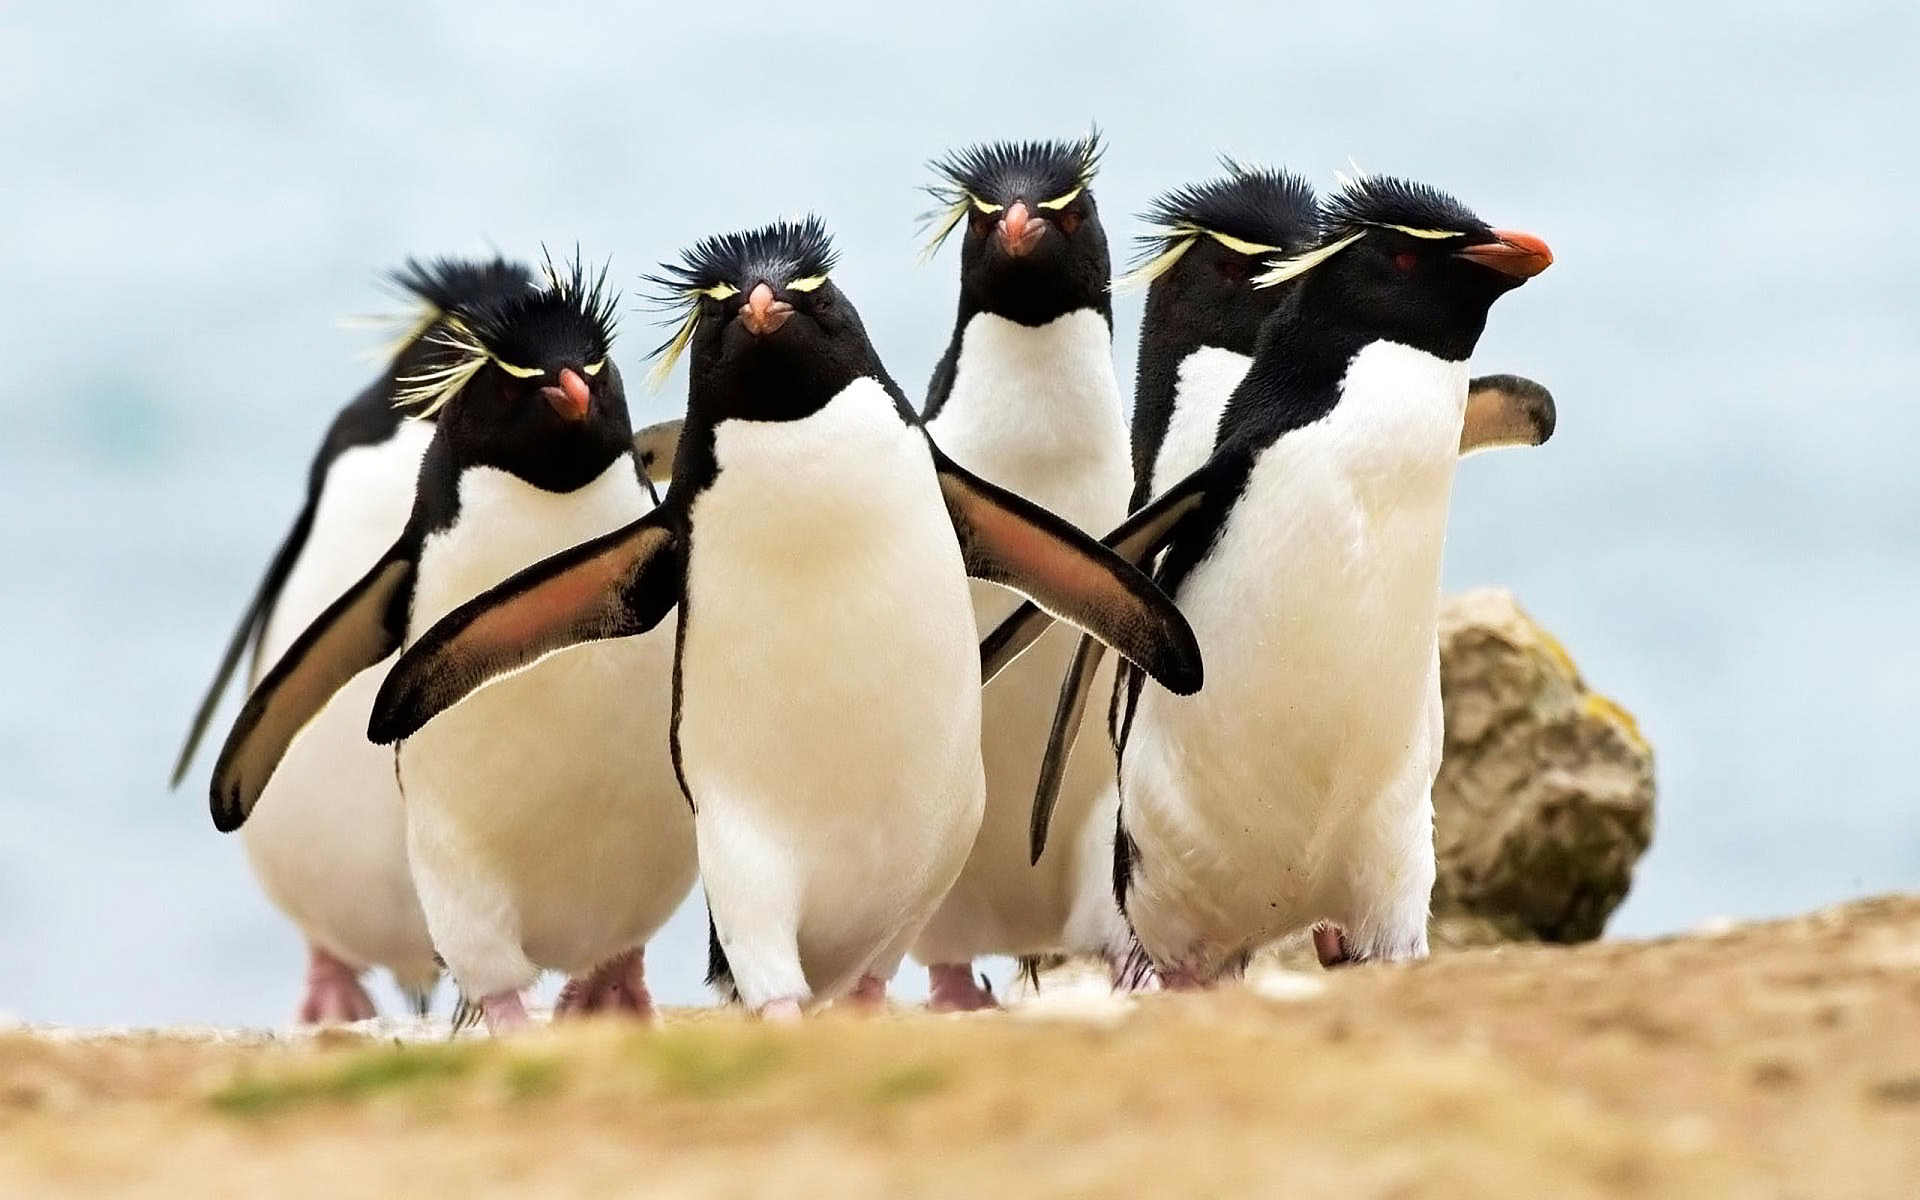 rockhopper penguin wallpaper